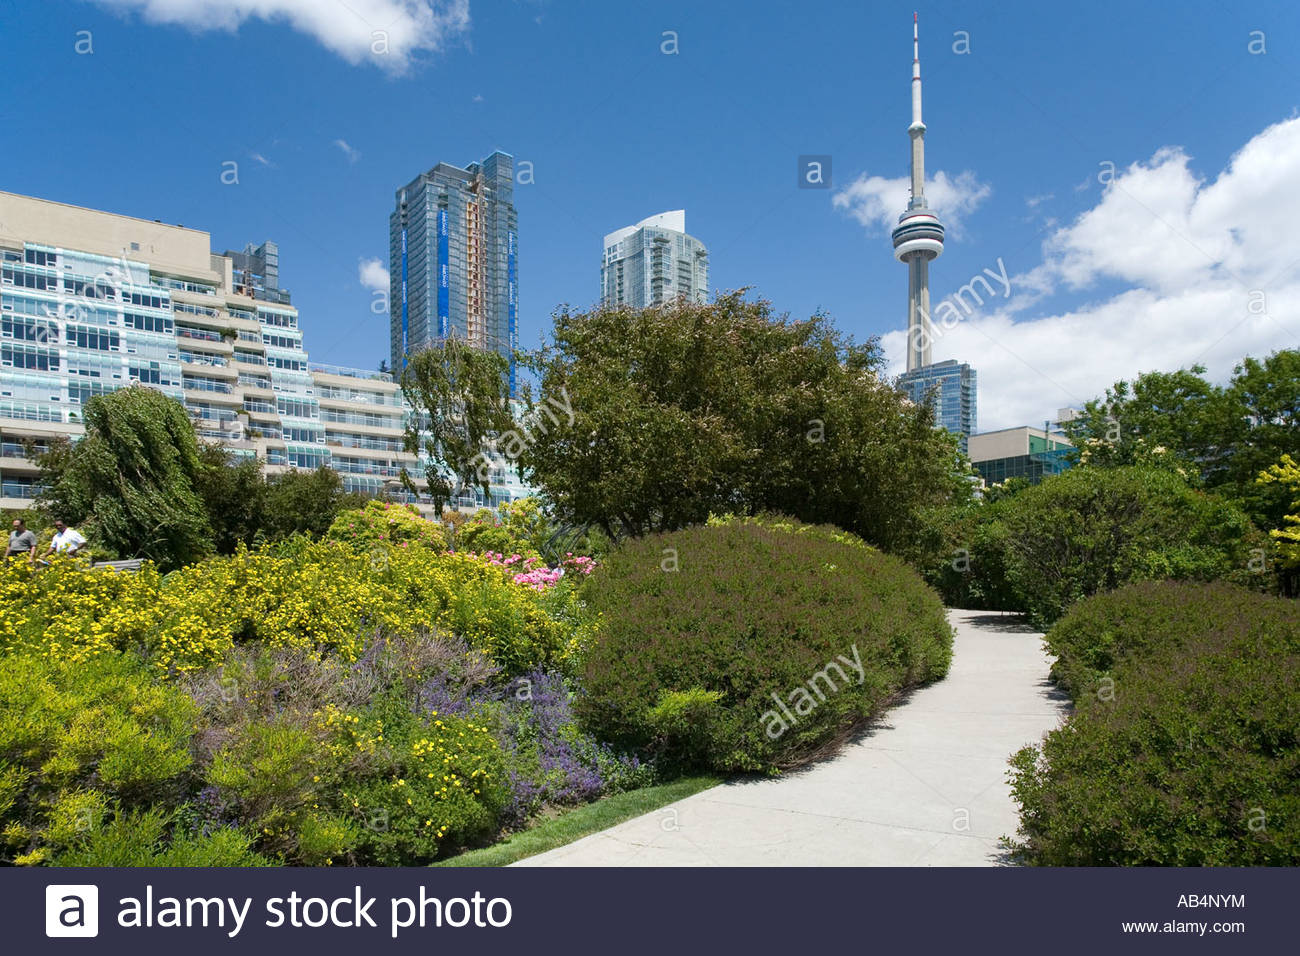 The Music Garden at Harbourfront Toronto Ontario Canada - Stock Image